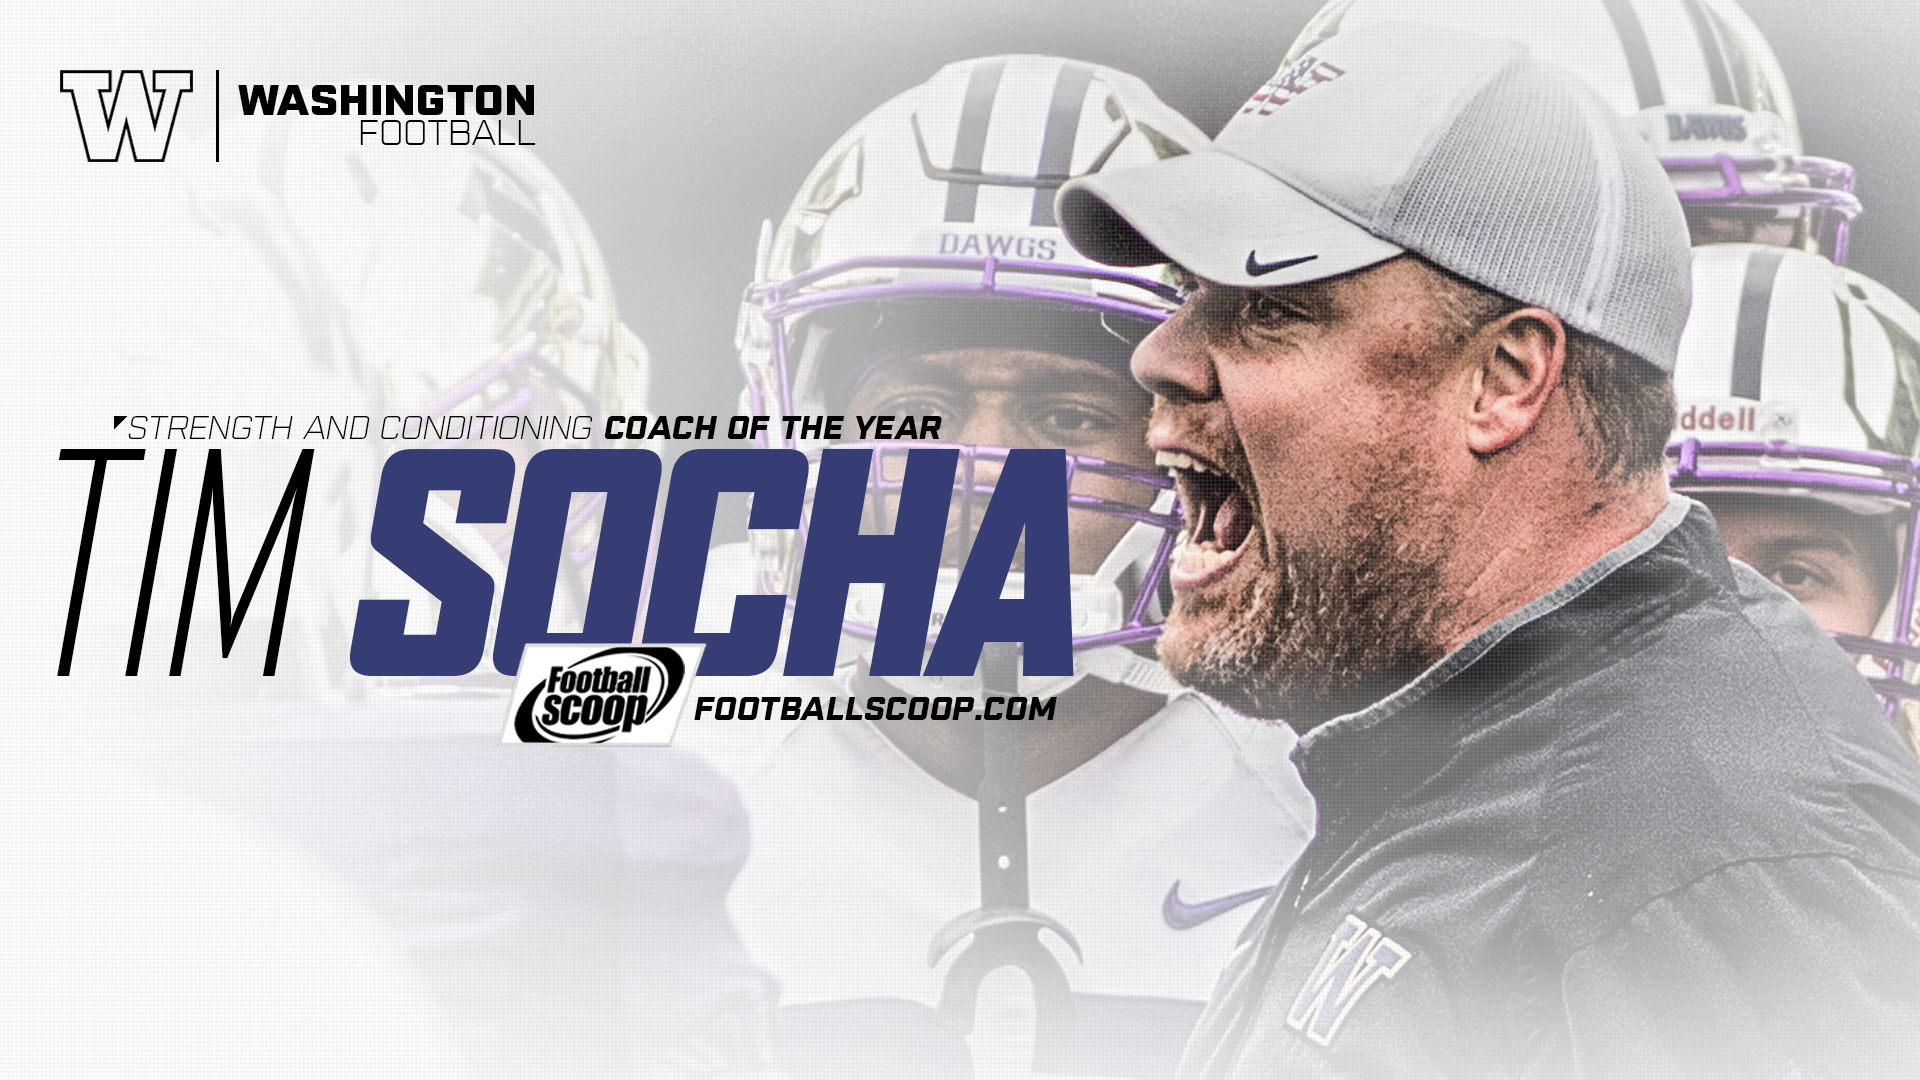 Socha Named Football Scoop Strength Coach Of The Year.